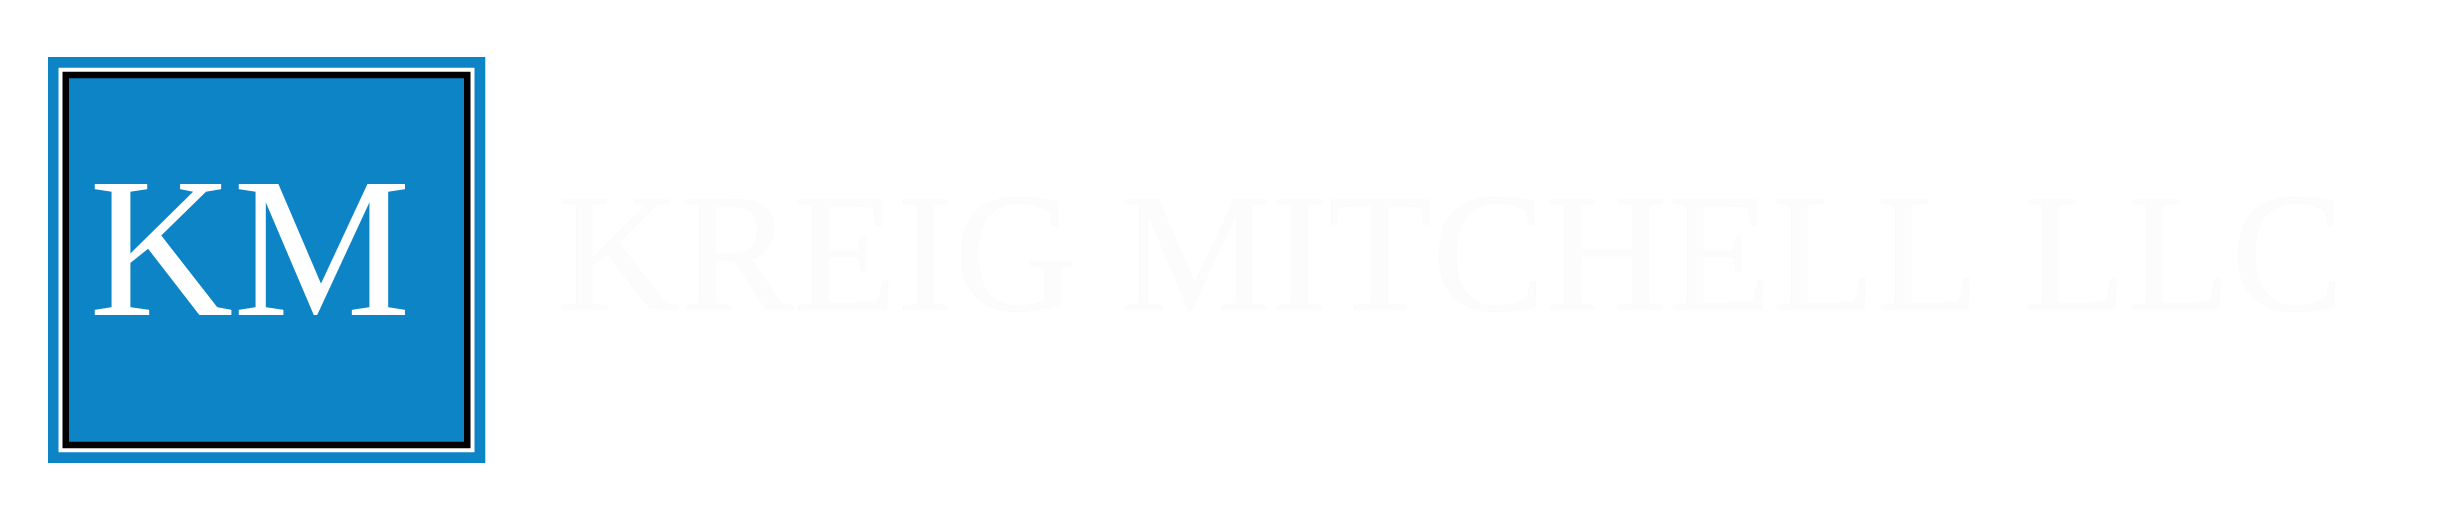 Houston Probate Attorneys: Kreig Mitchell LLC